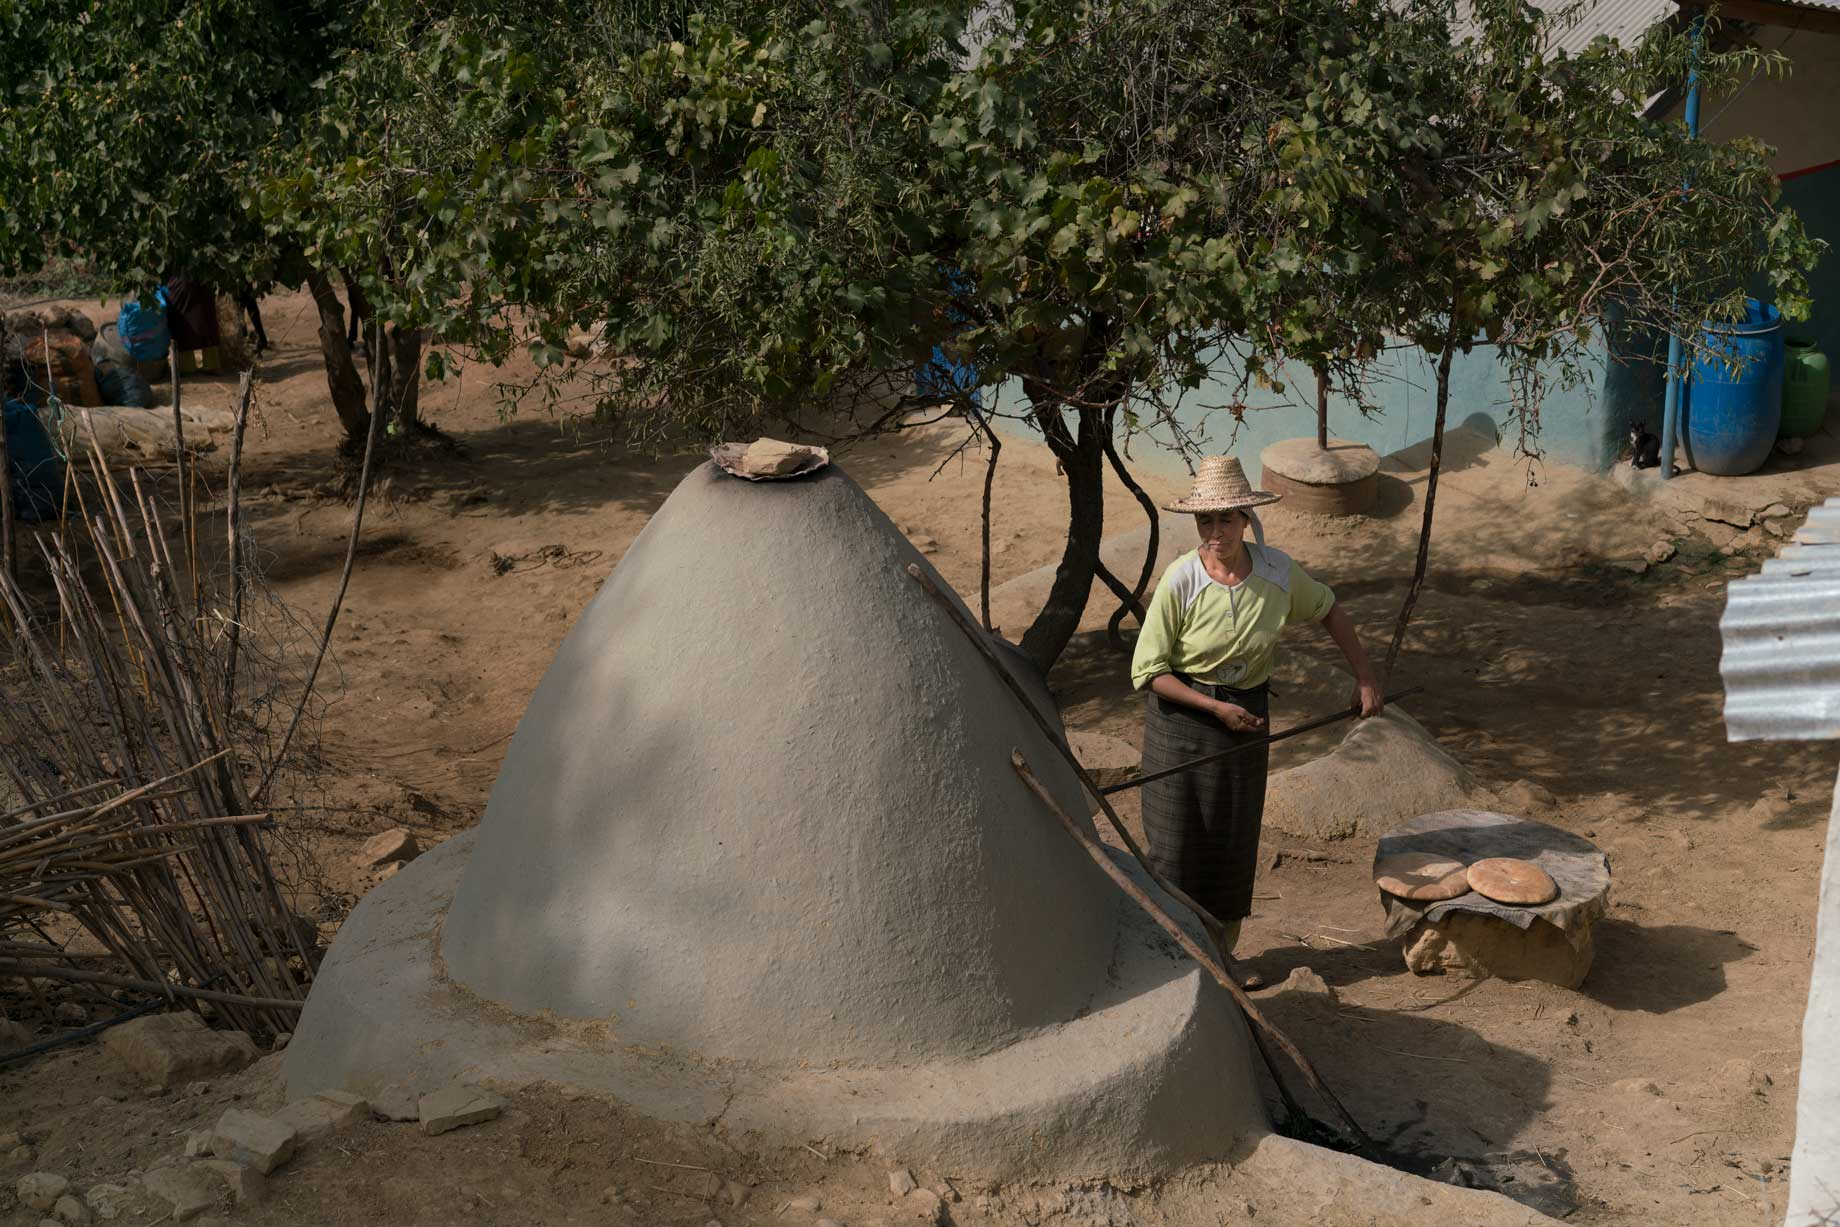 Stone Dome Oven In Beni Fouda, Morocco | Stories + Objects Global Travel Magazine